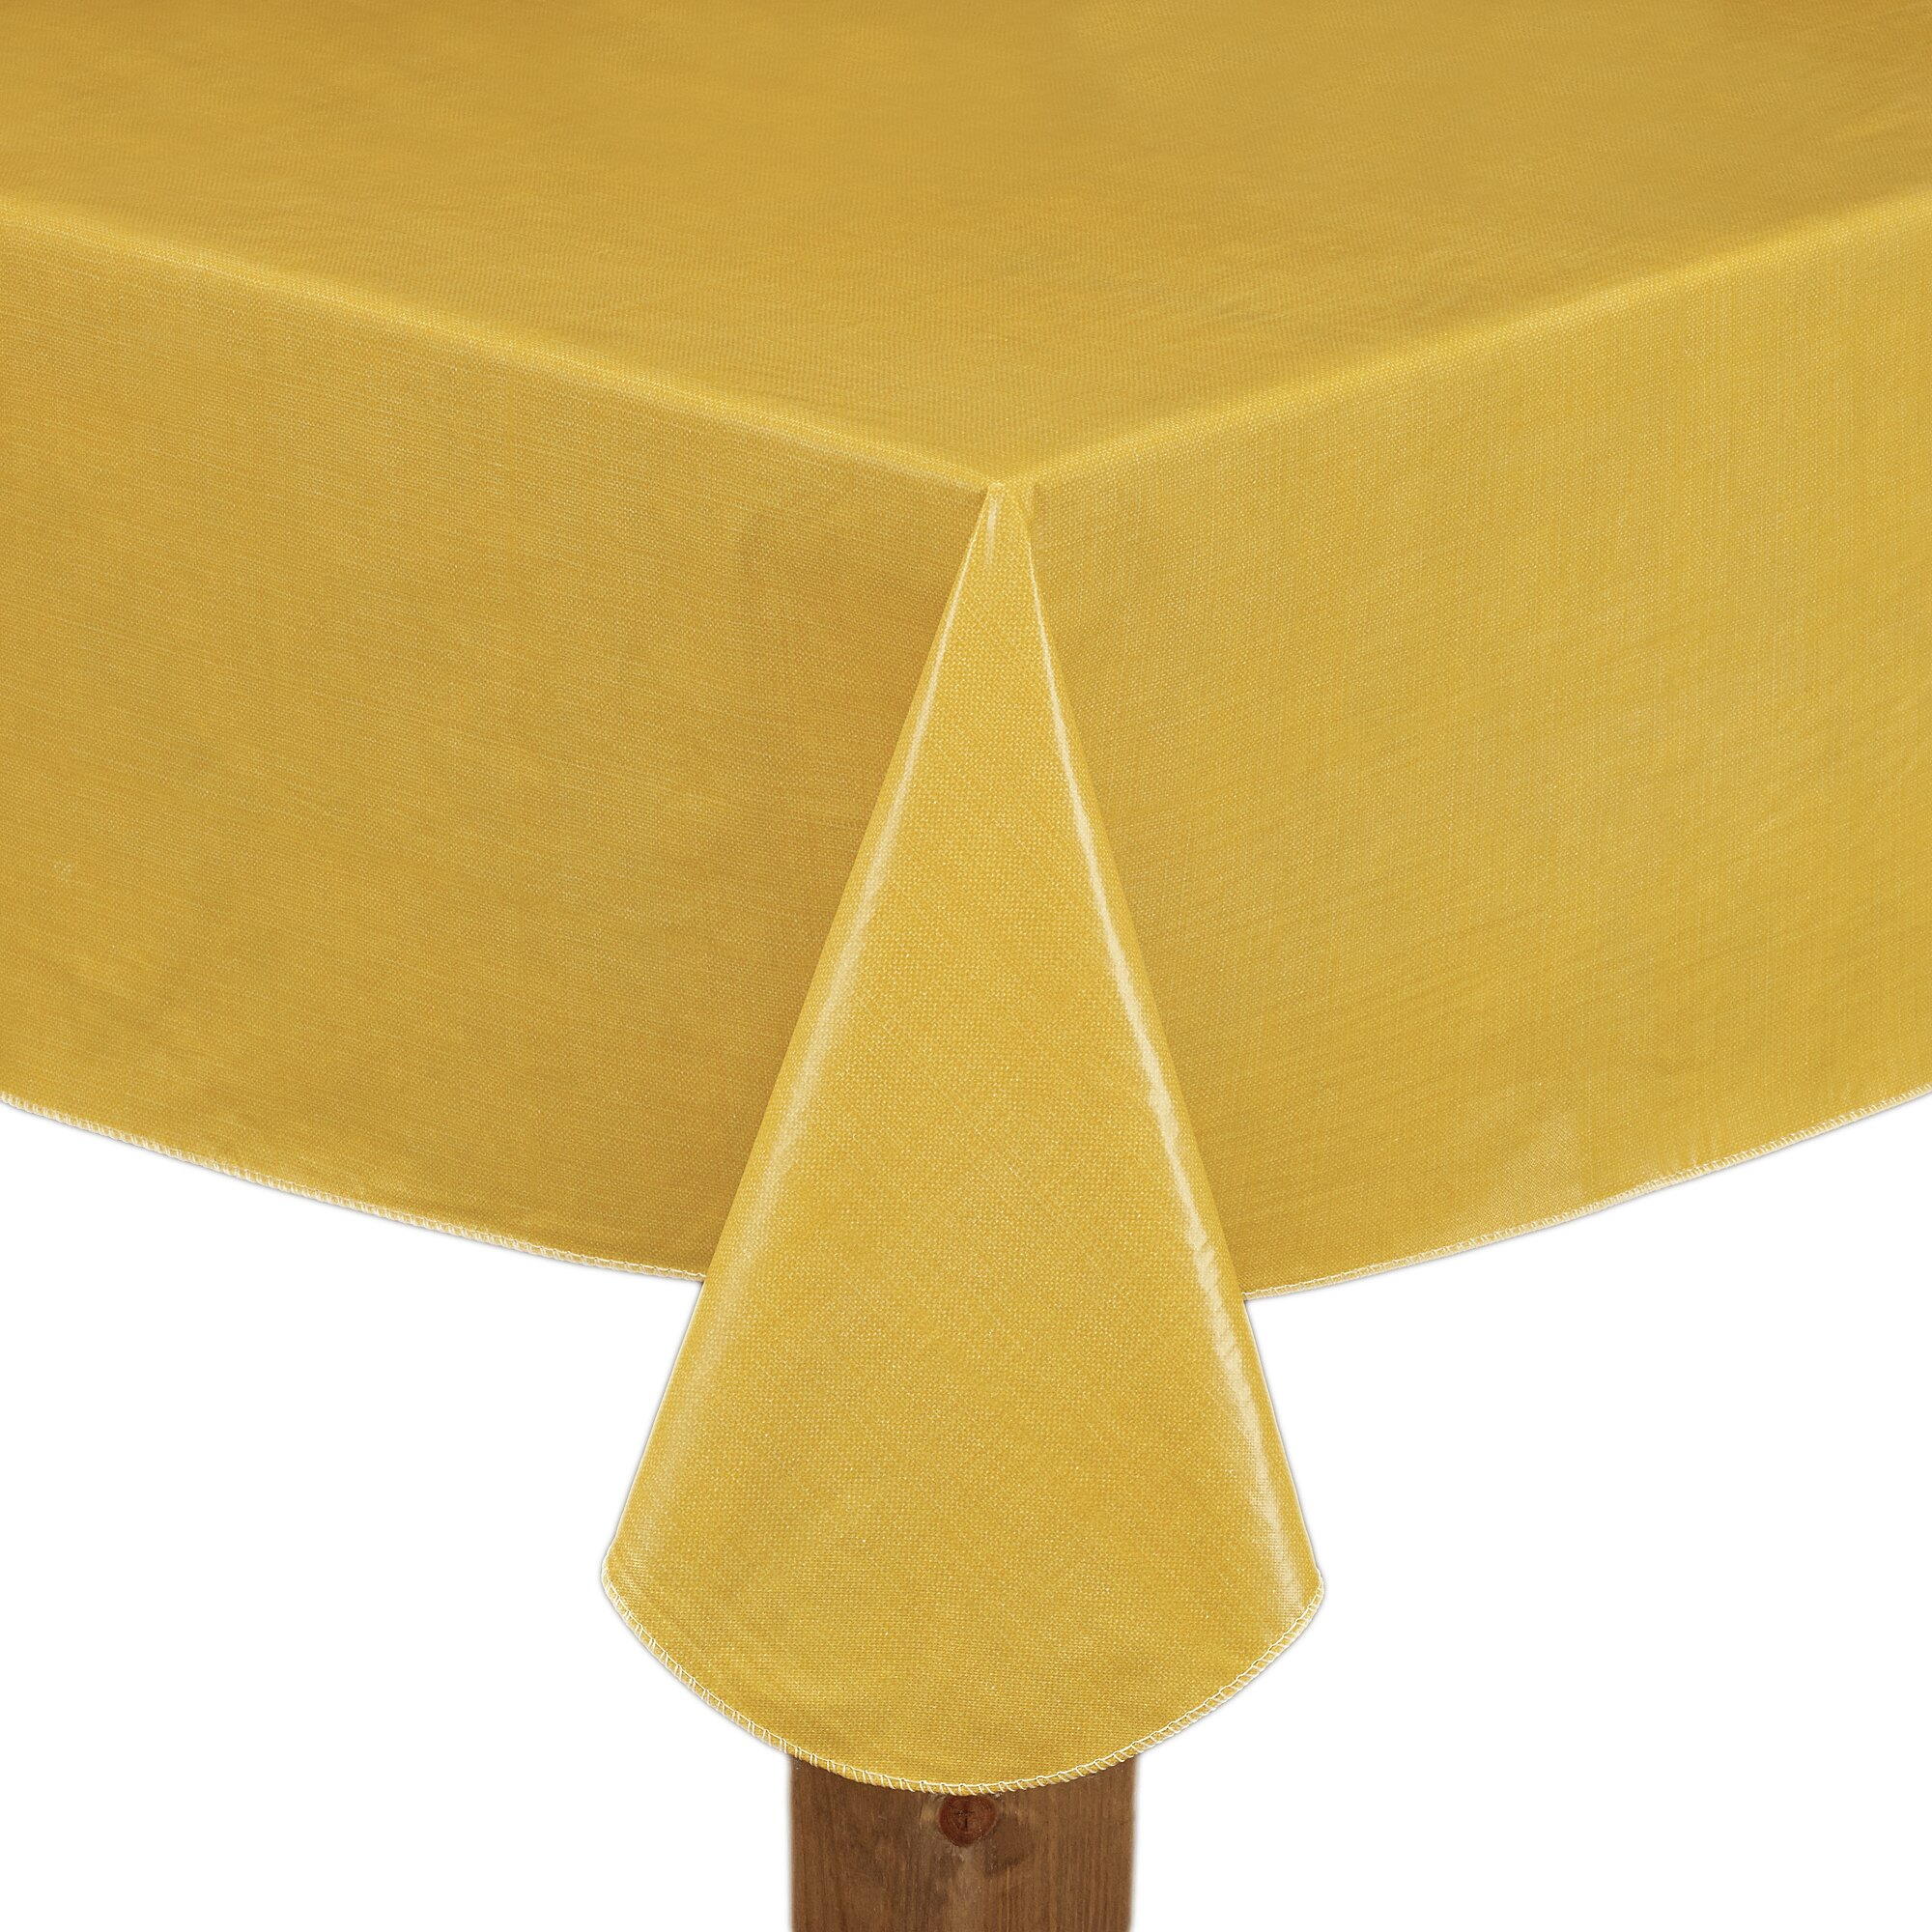 48 X 92 Gold Tablecloths You Ll Love In 2021 Wayfair